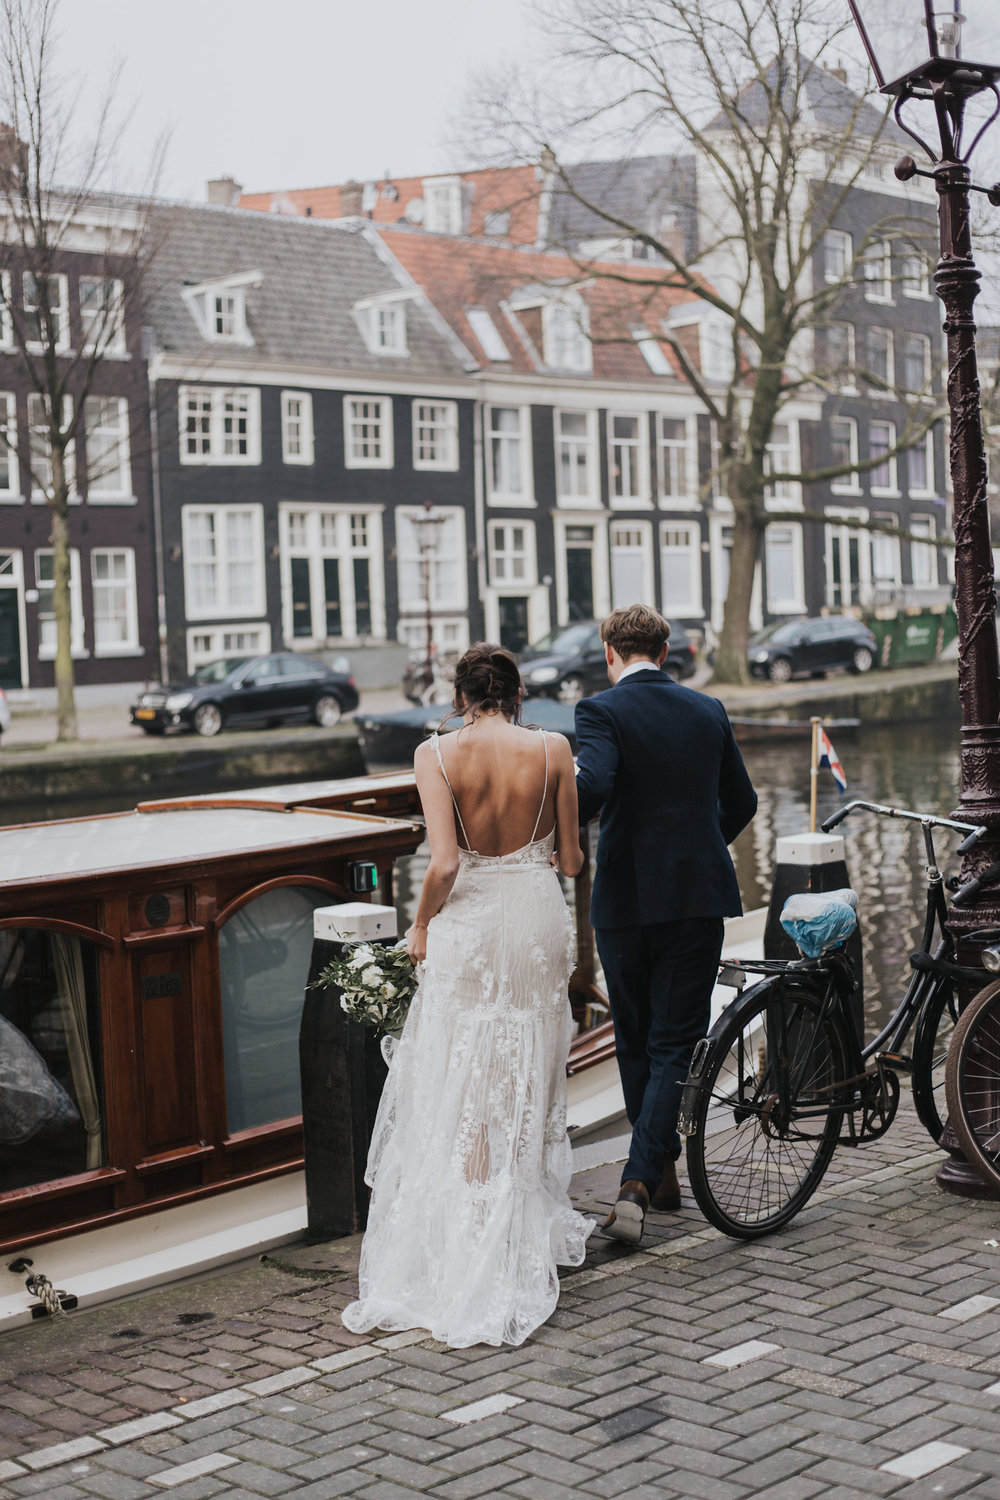 A.P Bloem florist bloemist Amsterdam flowers sprookjesachtige bloemen wedding bruiloft trouwen marriage Kerkstraat Andaz Hotel wildflowers Alice in Wonderland botanical trouwtrends bruiloft trends wedding goals trouwinspiratie trouwen photoshoot fairytale boot boat